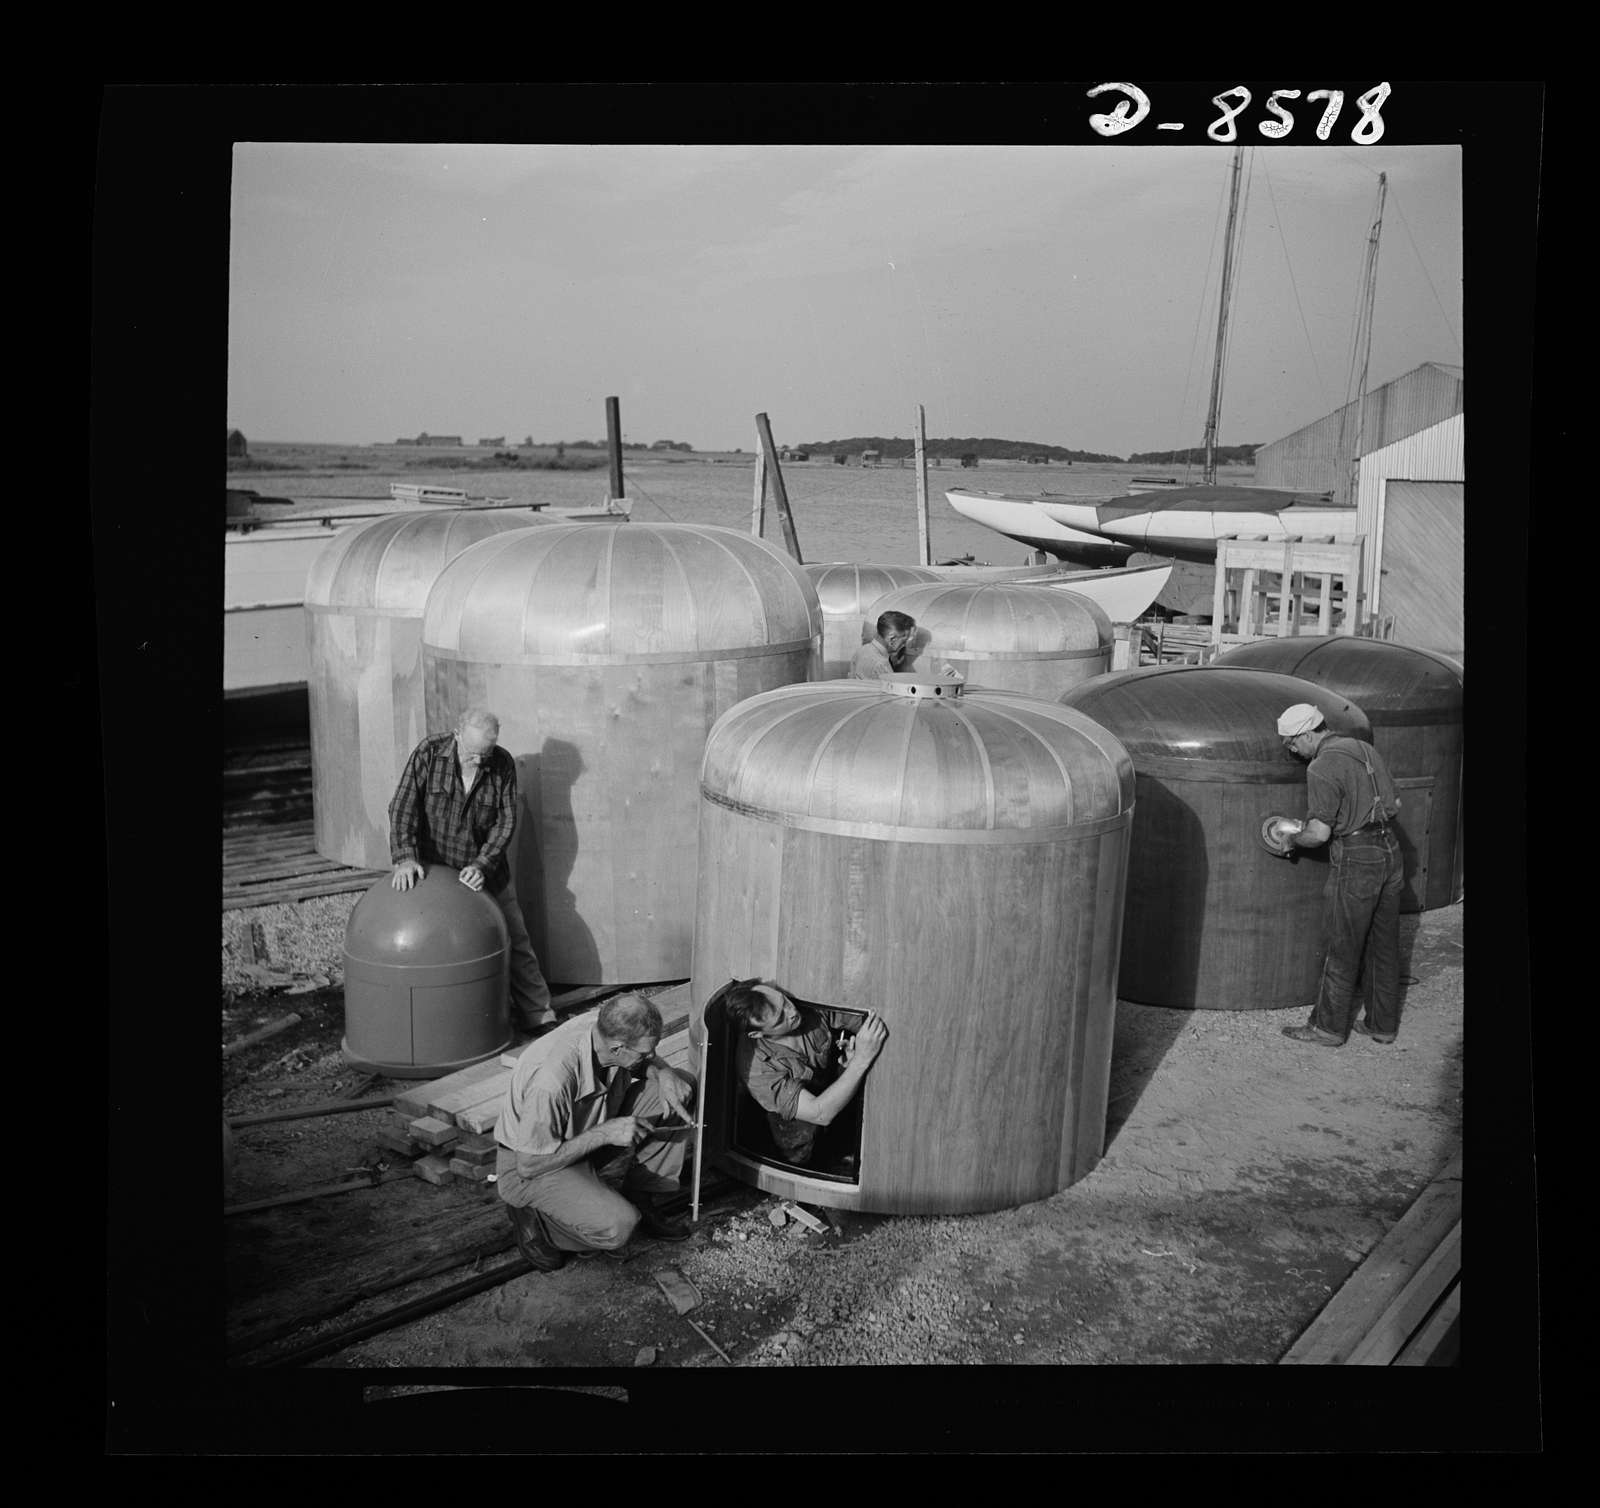 Conversion. Rowing shells to life rafts. Though they look like satin cushions, these smoothly sanded instrument protectors are made from plywood. Exact purpose of the covers is a military secret. Workers in the foreground are fitting the door on a completed protector